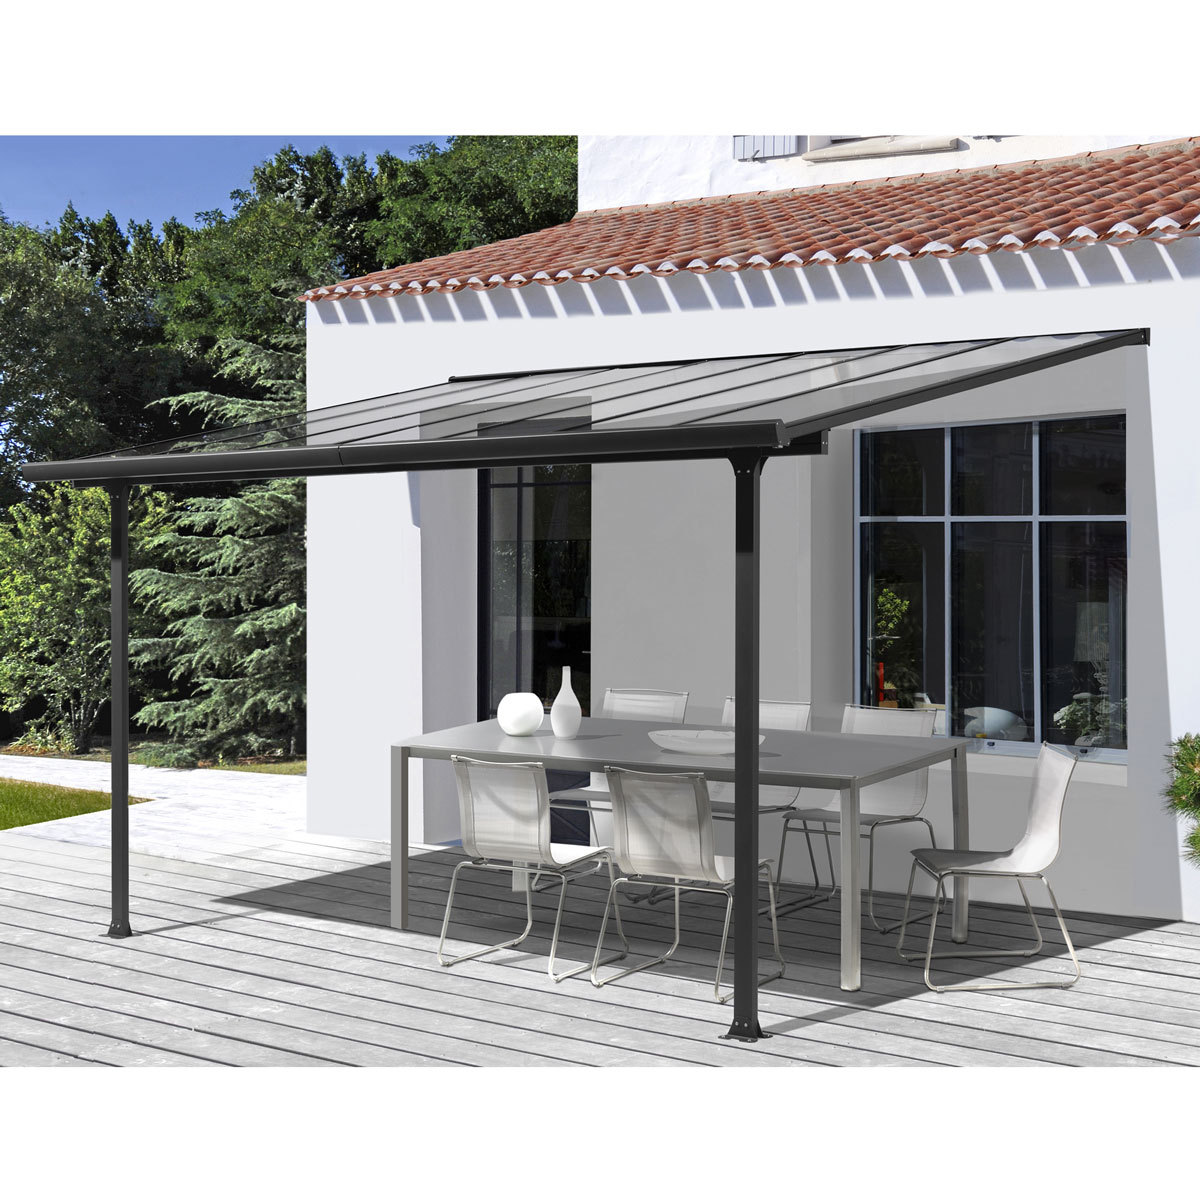 pergola en aluminium et polycarbonate 3x3 m abrirama. Black Bedroom Furniture Sets. Home Design Ideas